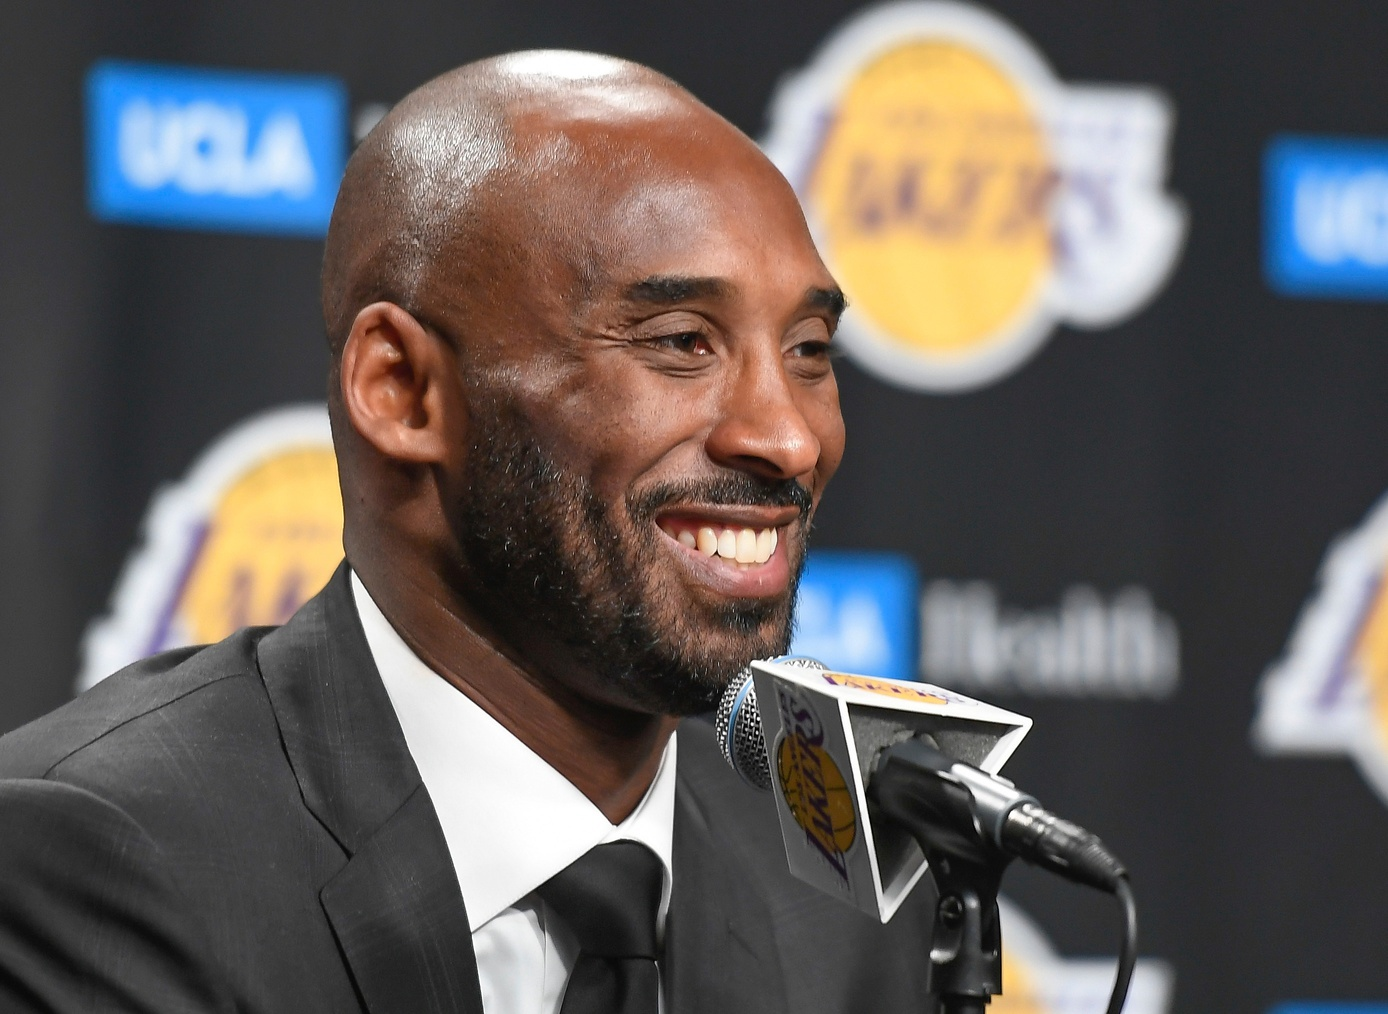 Kobe Bryant advised Jeanie Buss to reconstruct front office to attract LeBron James